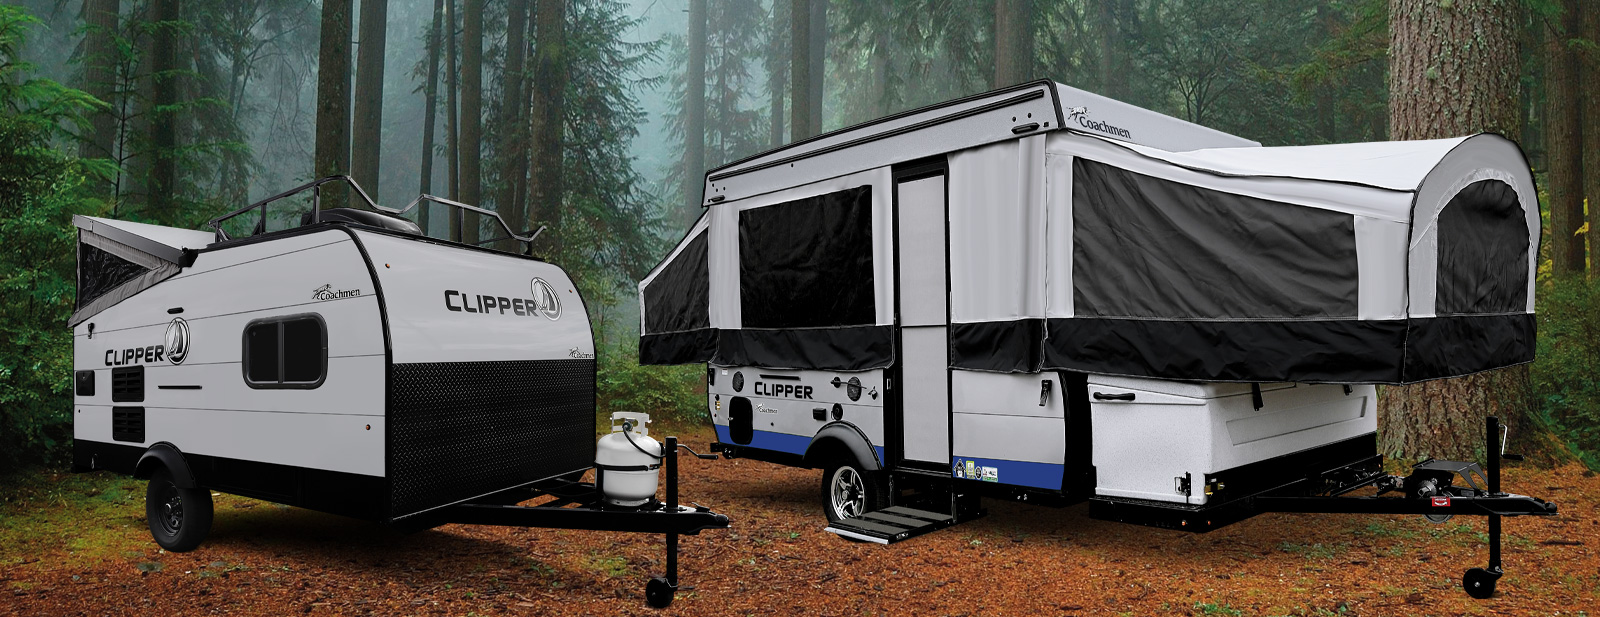 clipper camping trailers